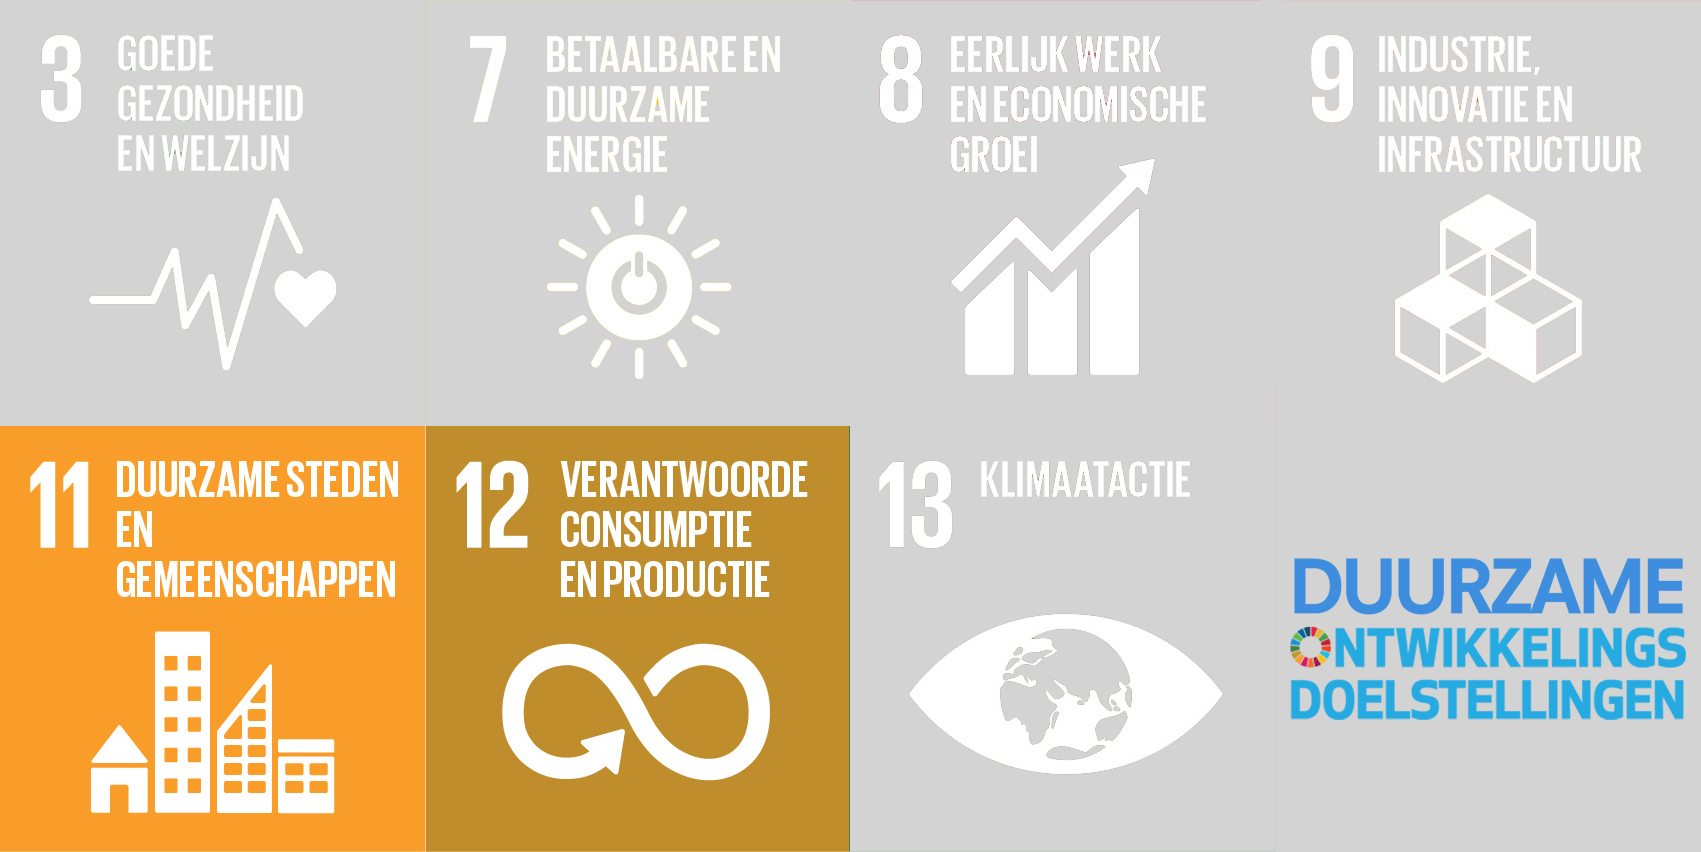 afval-grondstoffen-sdg-been-management-consulting